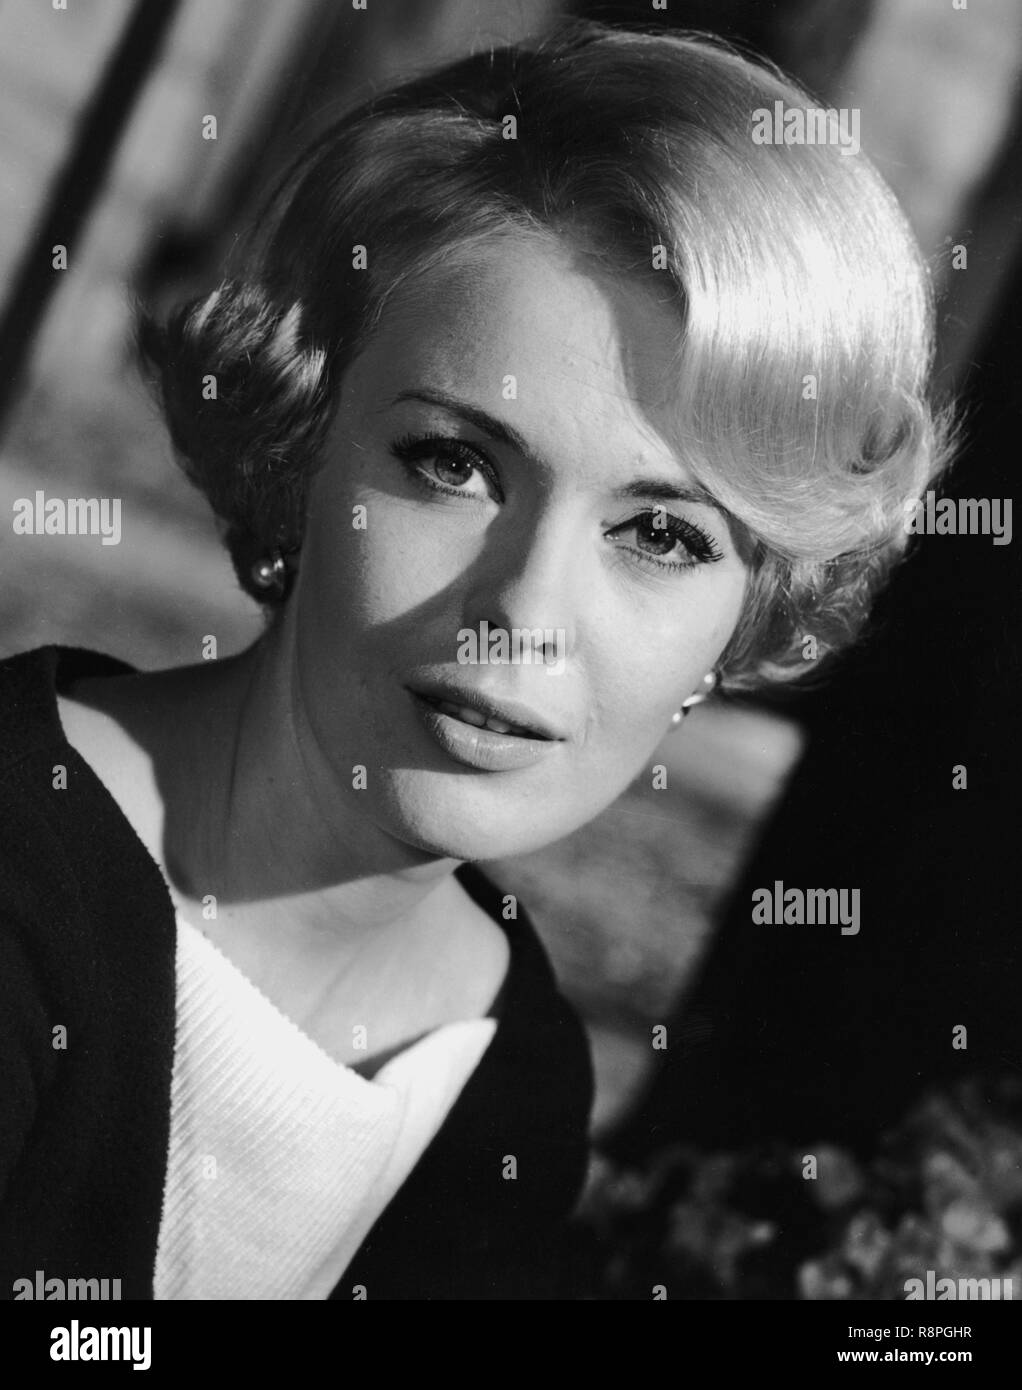 Jean Seberg Moment To Moment 1966 Universal File Reference 33635 579tha Stock Photo Alamy